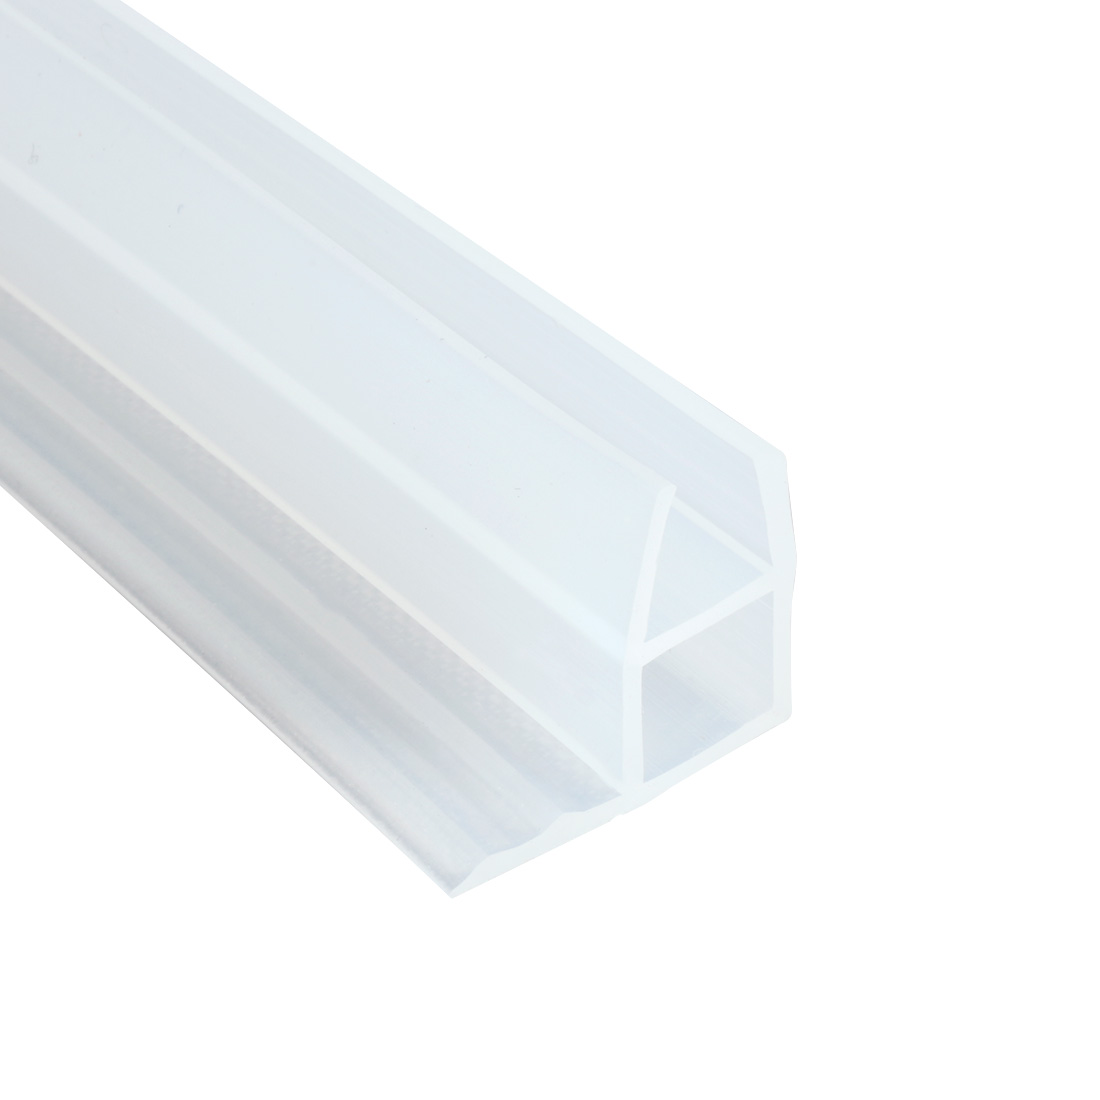 1M 39-inch Frameless Window Shower Door Seal Clear for 12mm 15/32-inch Glass